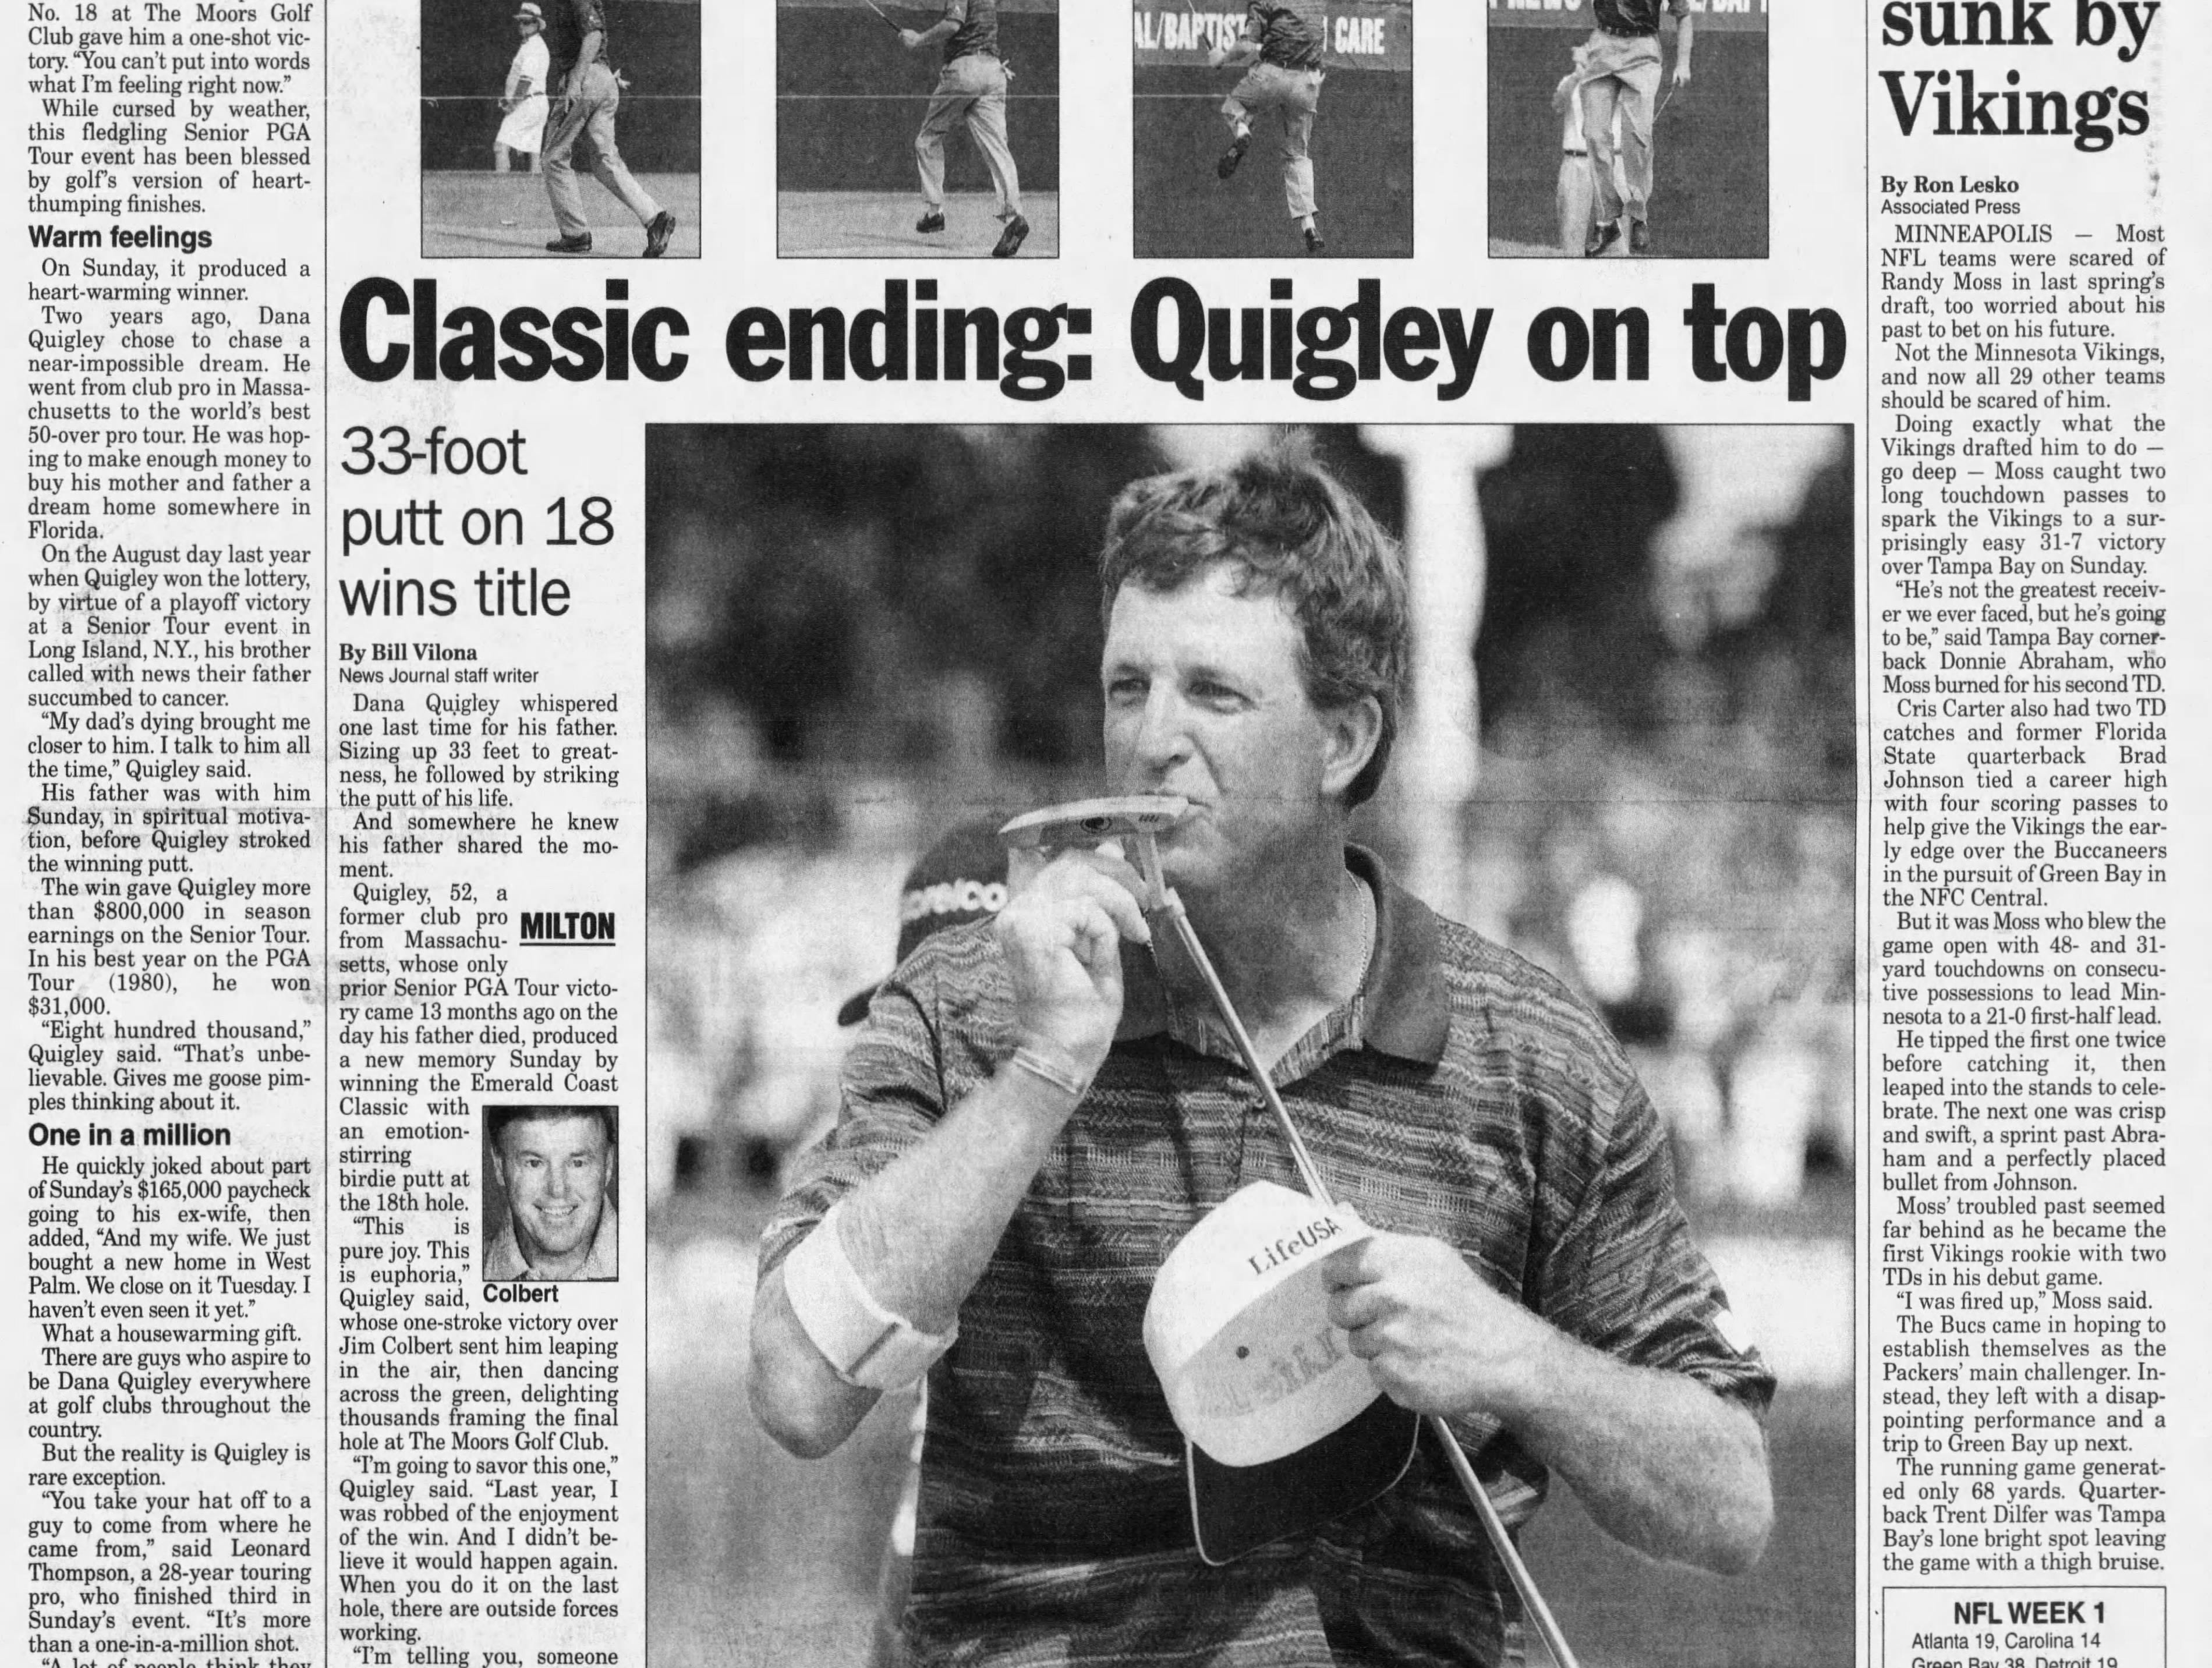 Sept. 1998: Arnold Palmer, Lee Trevino, Jerry Pate play in Pensacola's Emerald Coast Classic.